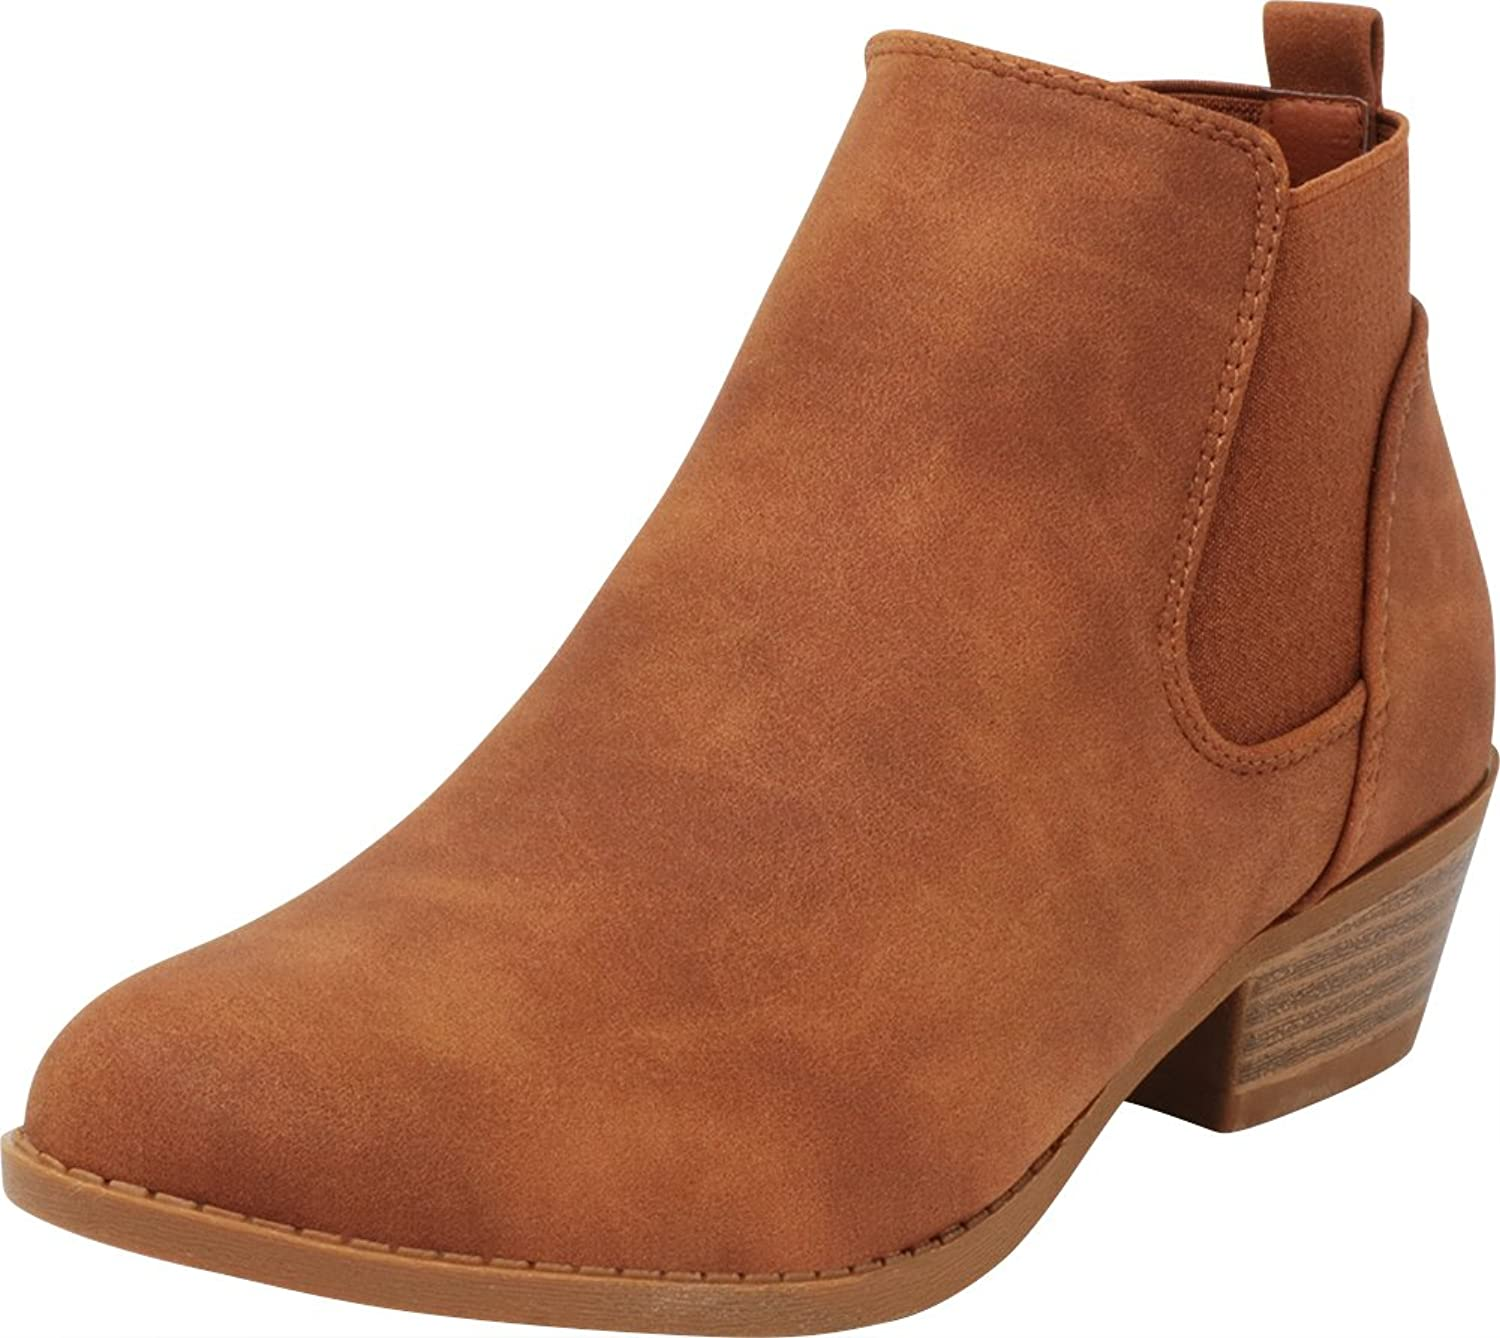 Cambridge Select Women's Closed Round Toe Chelsea Stretch Slip-On Chunky Stacked Low Heel Ankle Bootie